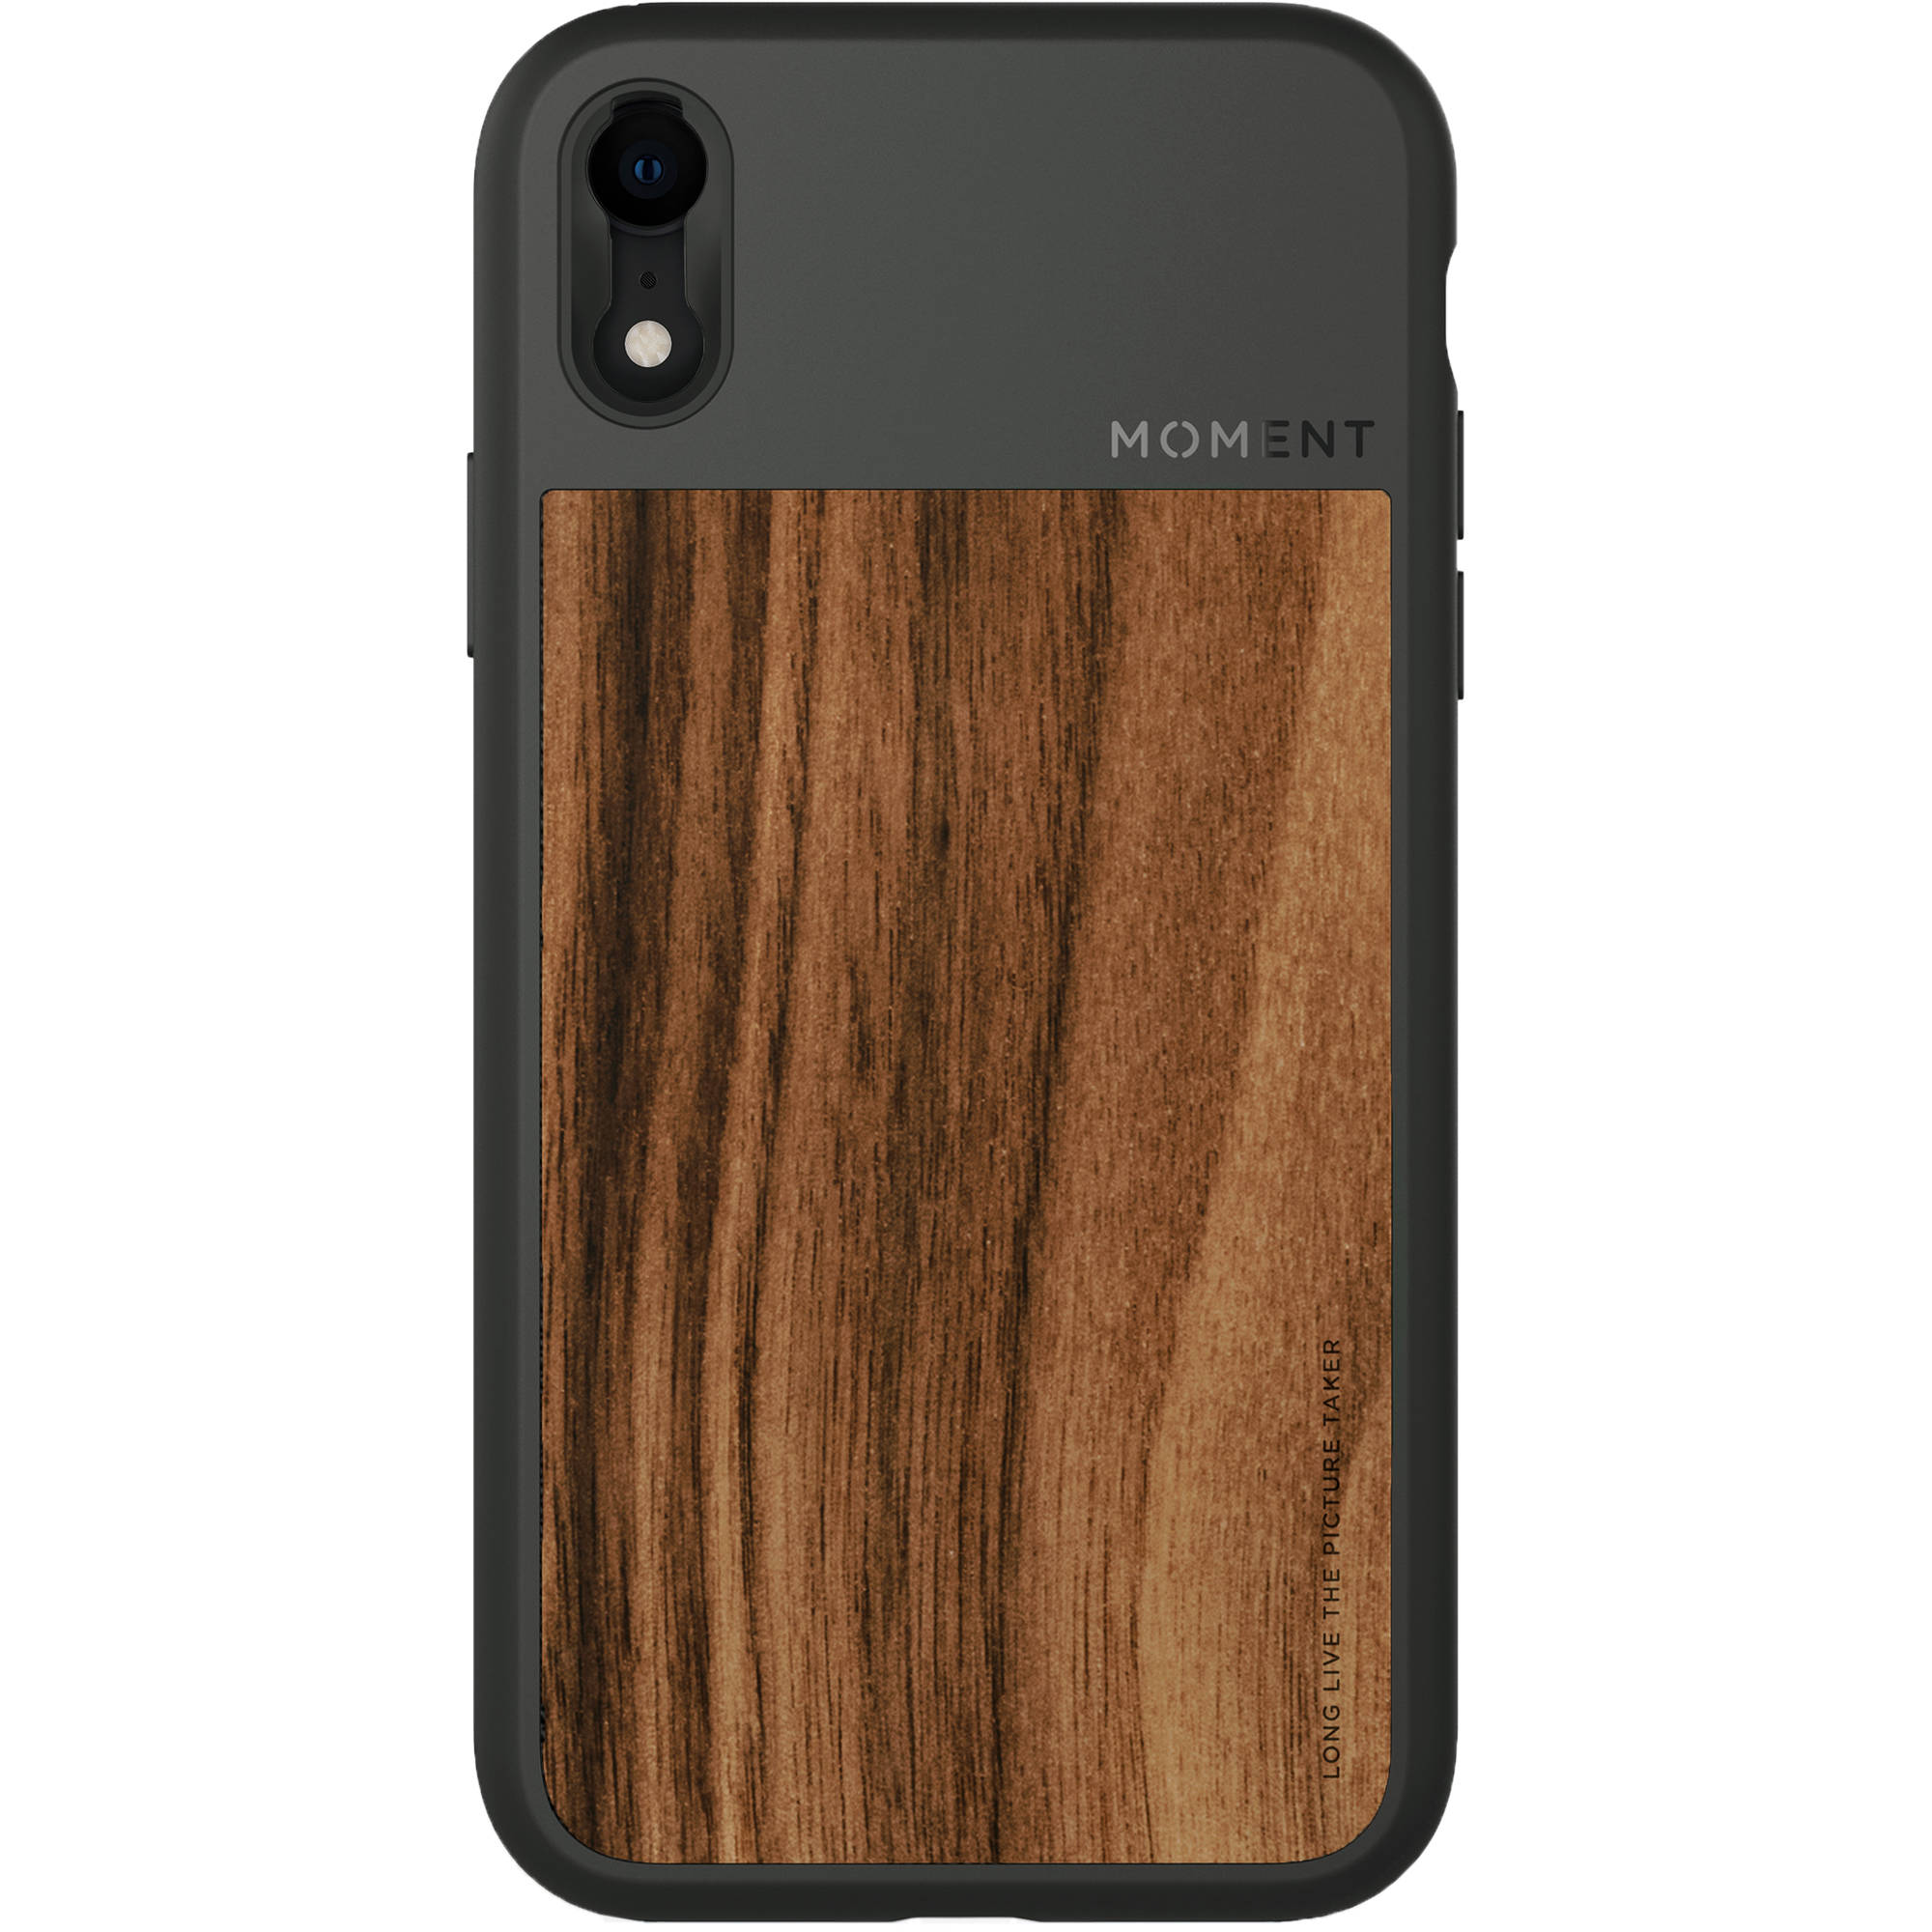 new concept 3dd7a e18ff Moment Photo Case for the iPhone XR (Walnut)